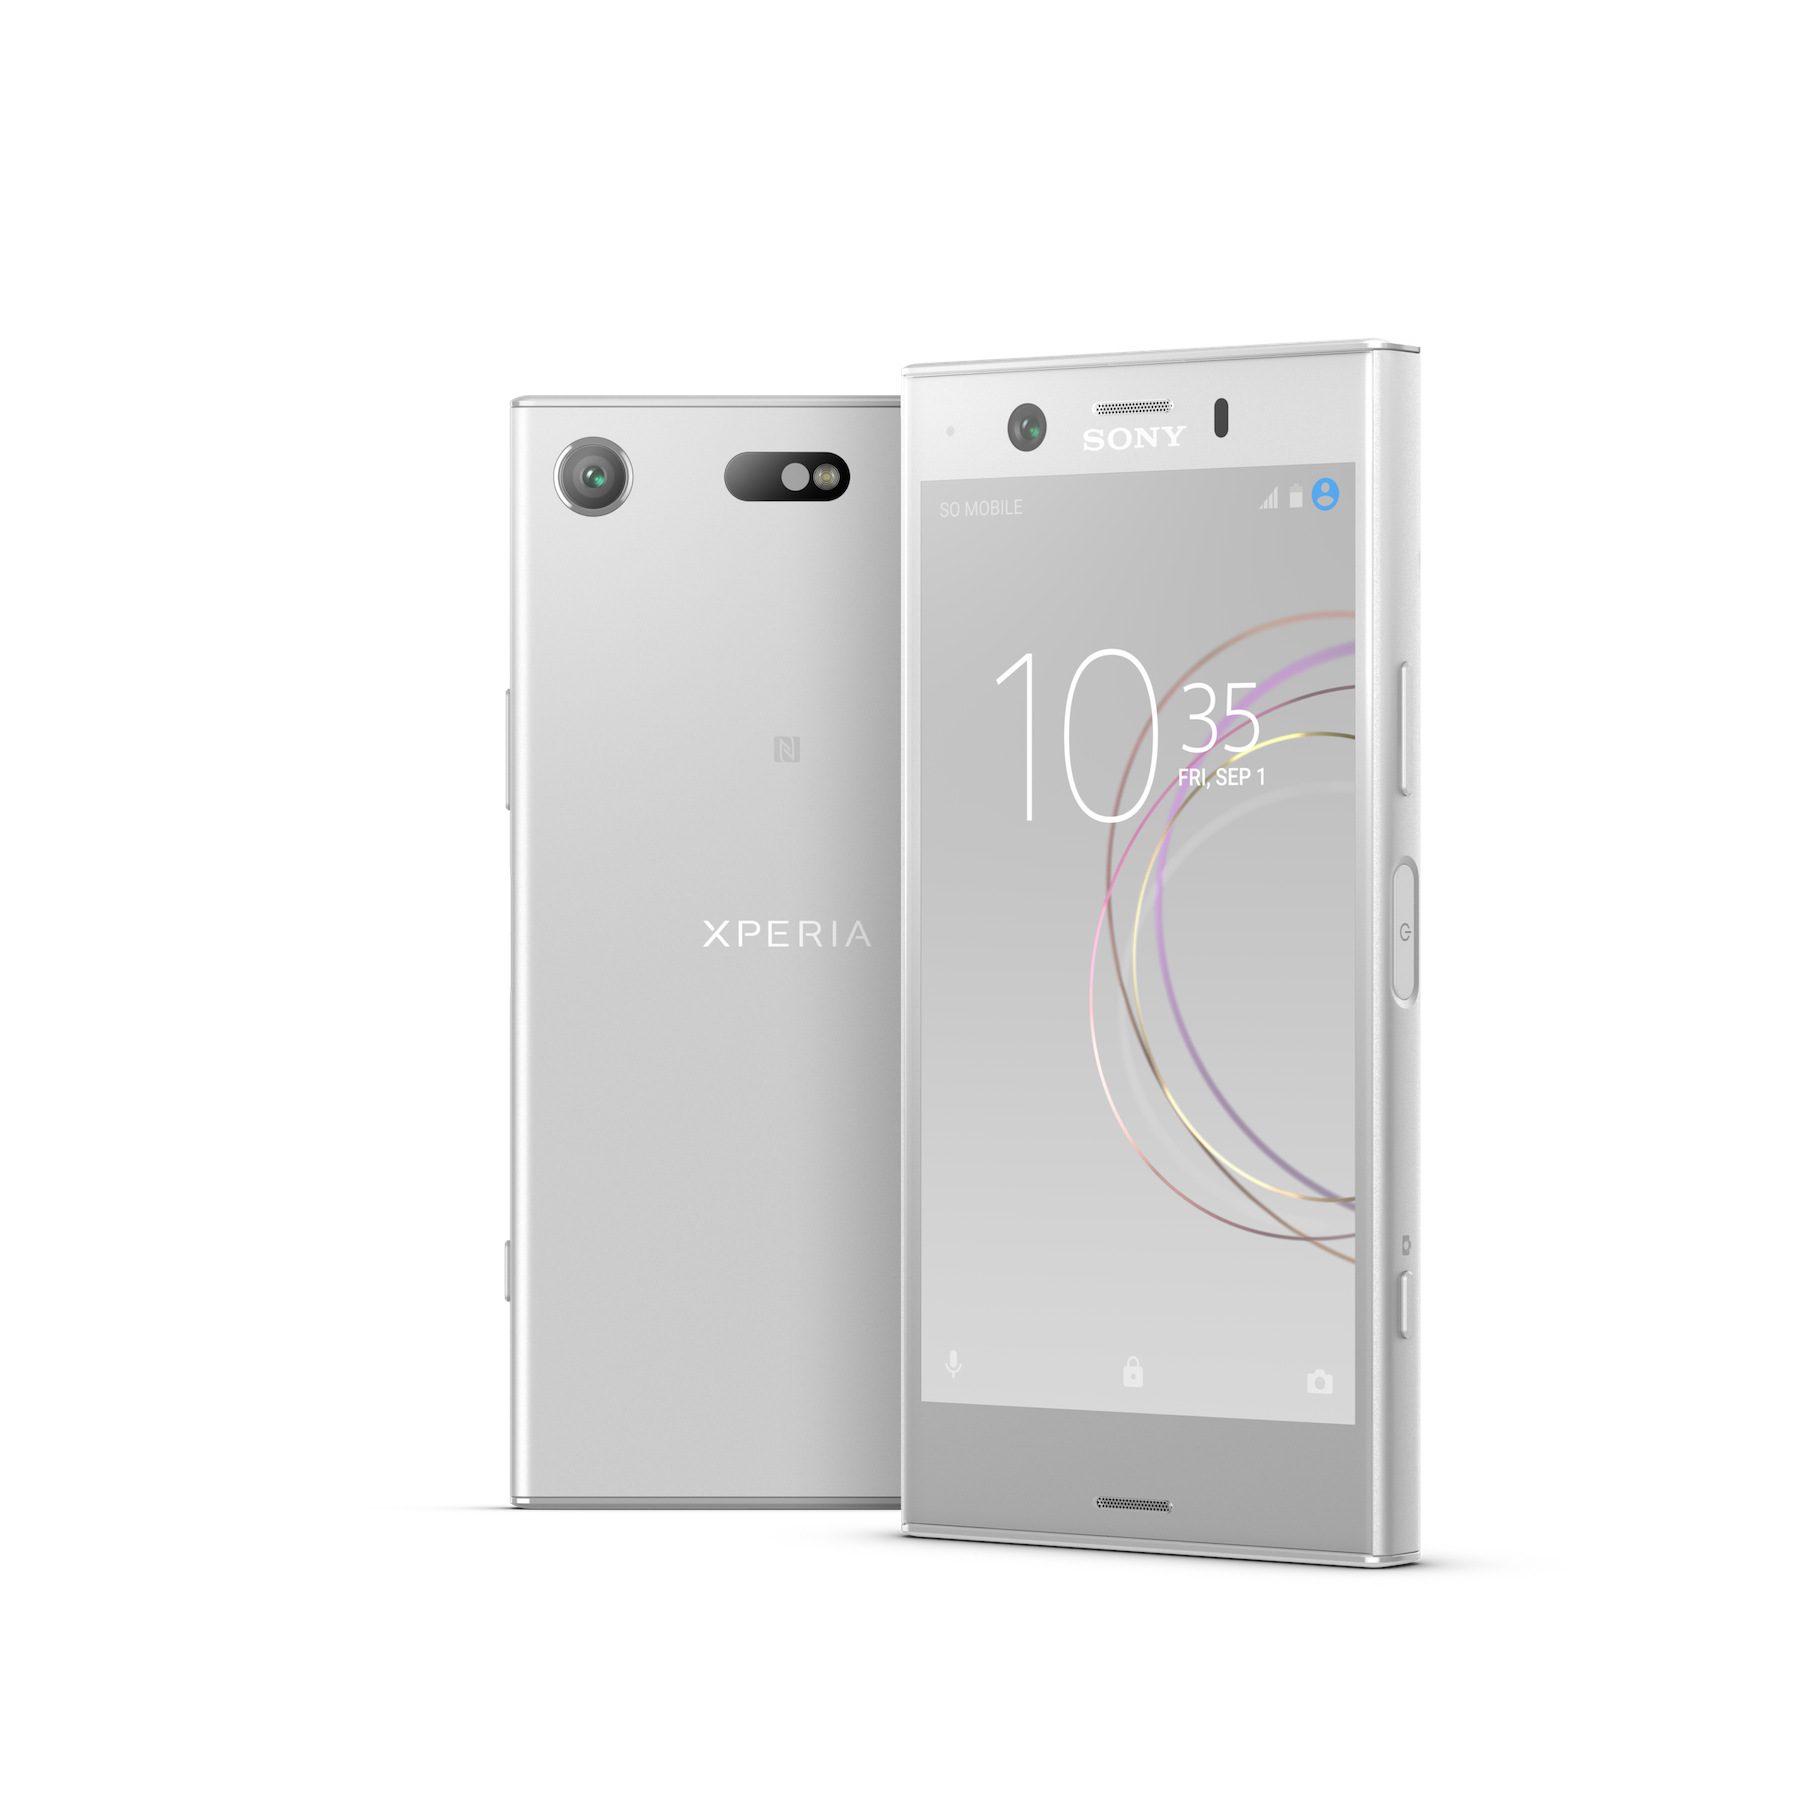 sony announces three new xperia phones at ifa 2017 the xz1 xz1 compact and xa1 plus. Black Bedroom Furniture Sets. Home Design Ideas